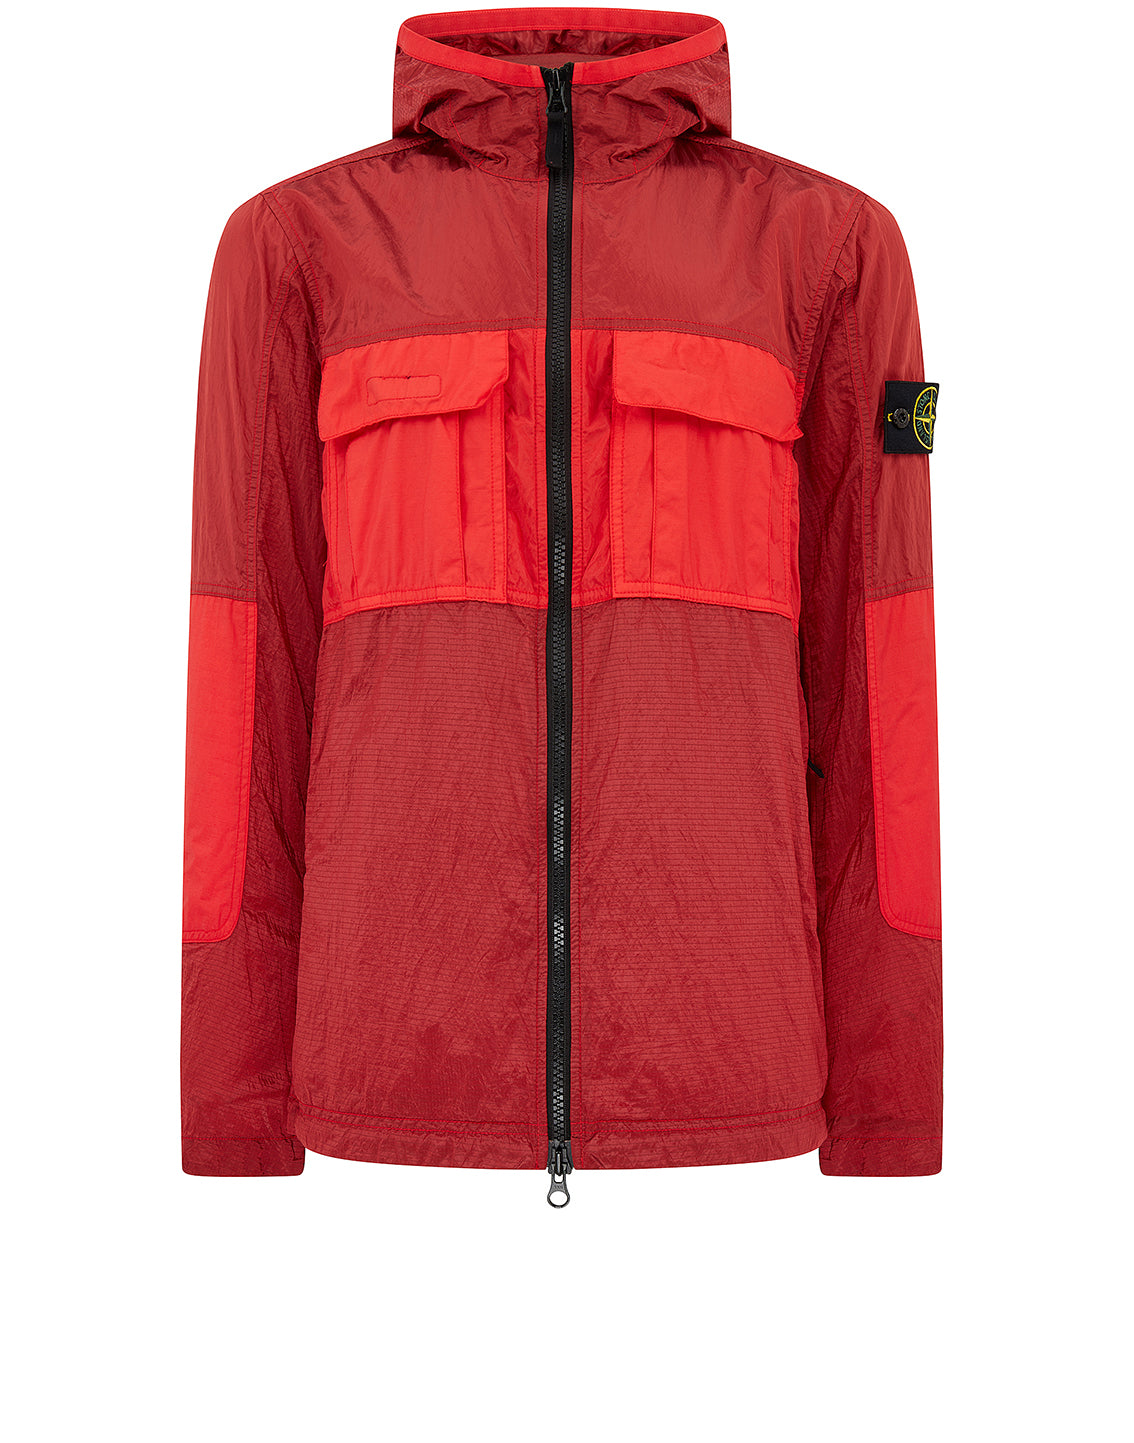 43632 NYLON METAL WATRO RIPSTOP Jacket in Coral